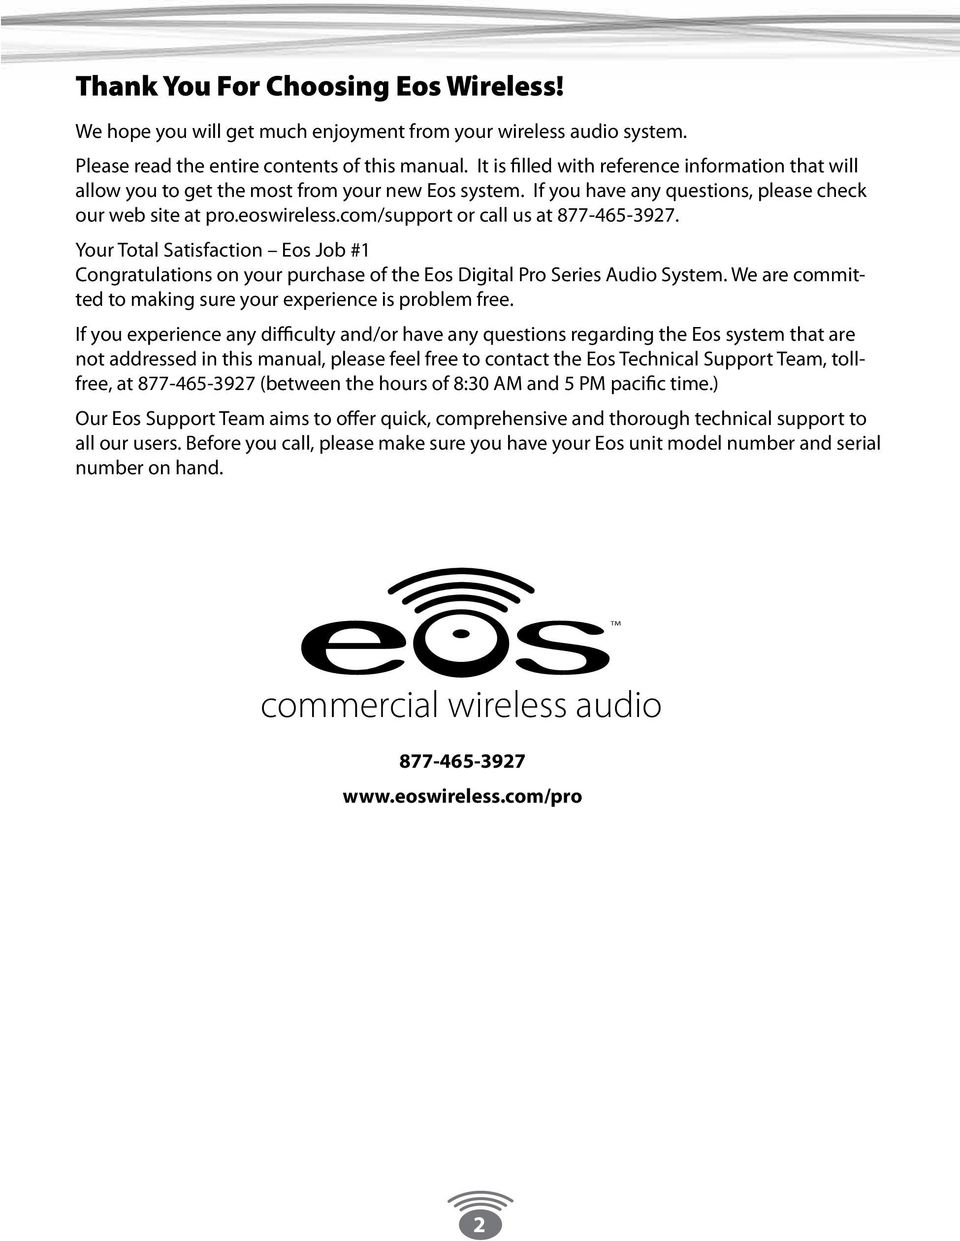 com/support or call us at 877-465-3927. Your Total Satisfaction Eos Job #1 Congratulations on your purchase of the Eos Digital Pro Series Audio System.